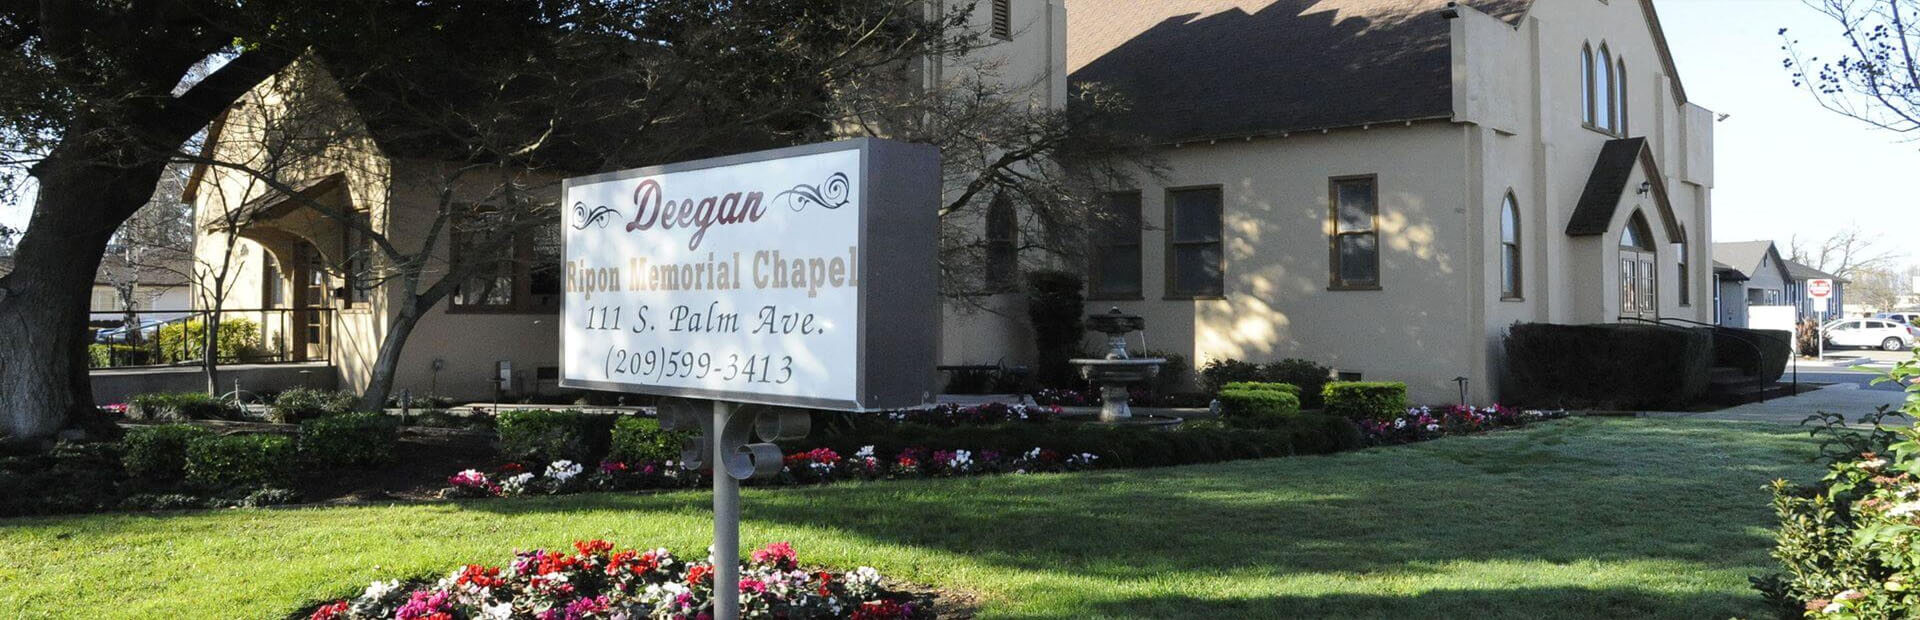 Deegan Funeral Chapel in Escalon & Ripon, CA